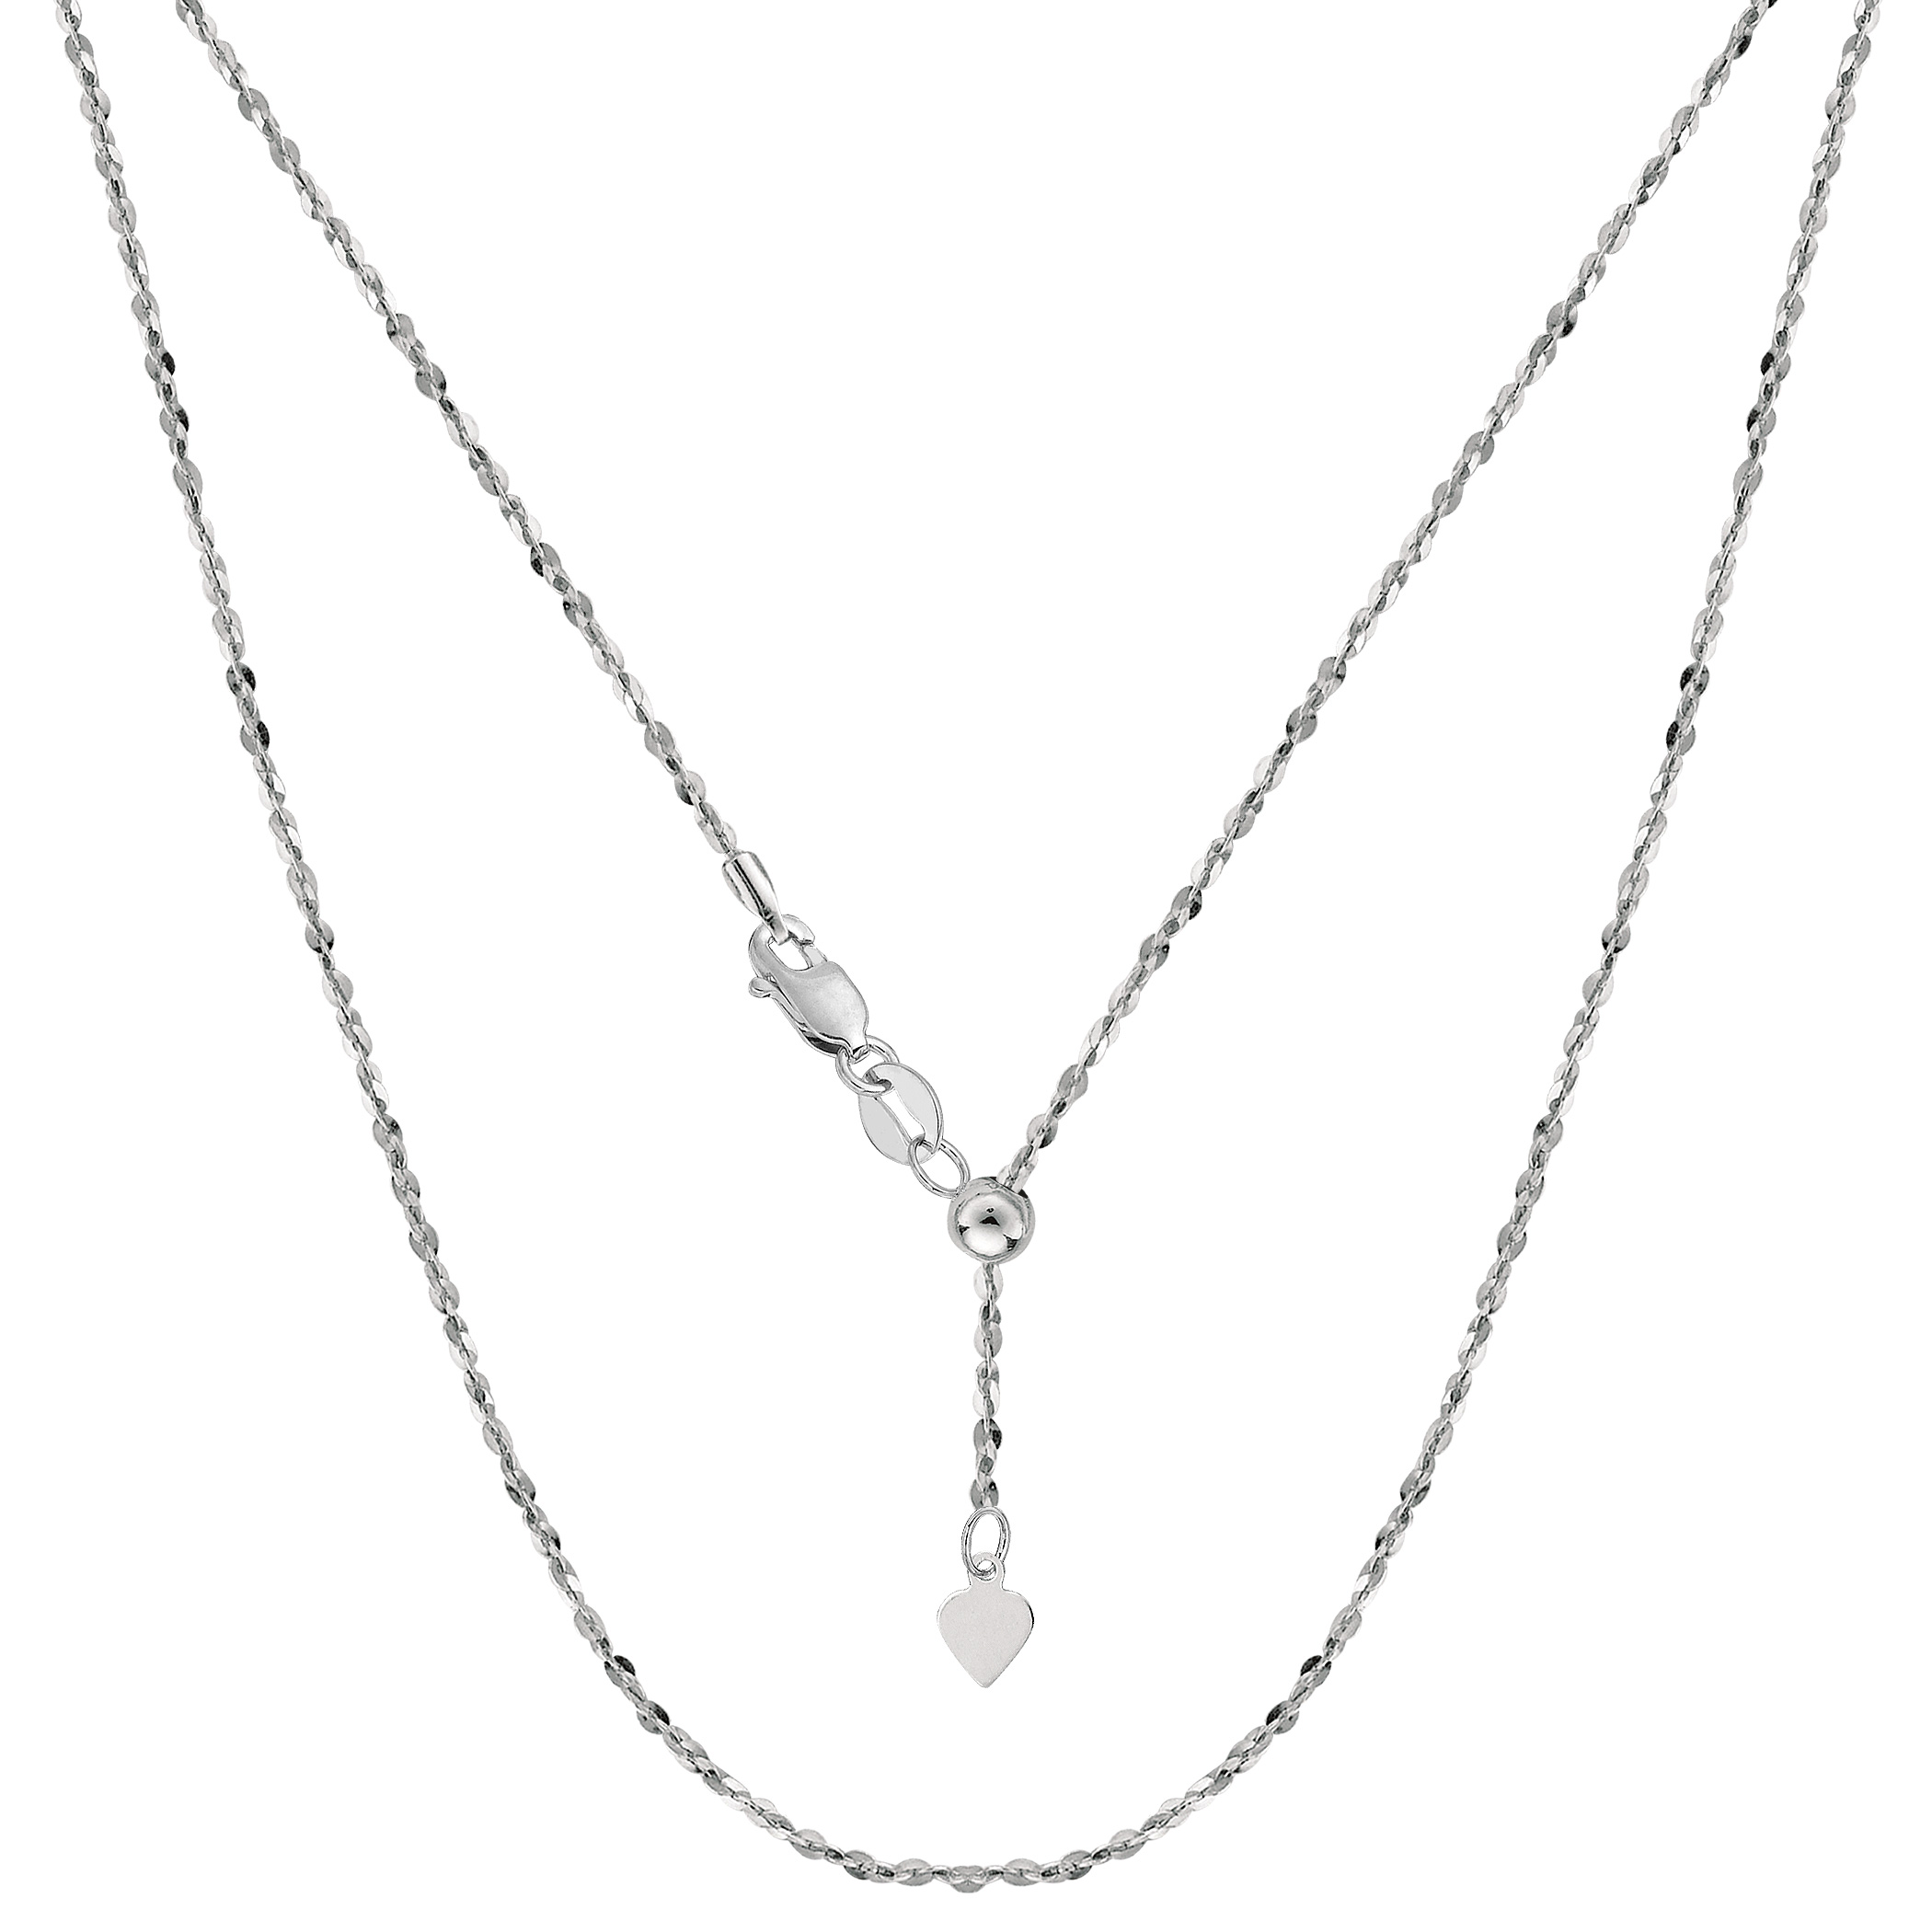 Sterling Silver Rhodium Plated 22  Sliding Adjustable Link Chain, Width 1 mm Using it by itself or combining it with charms and pendants, this 22 inch long adjustable piatto link style chain is a perfect addition to any jewelry fashionista collection.